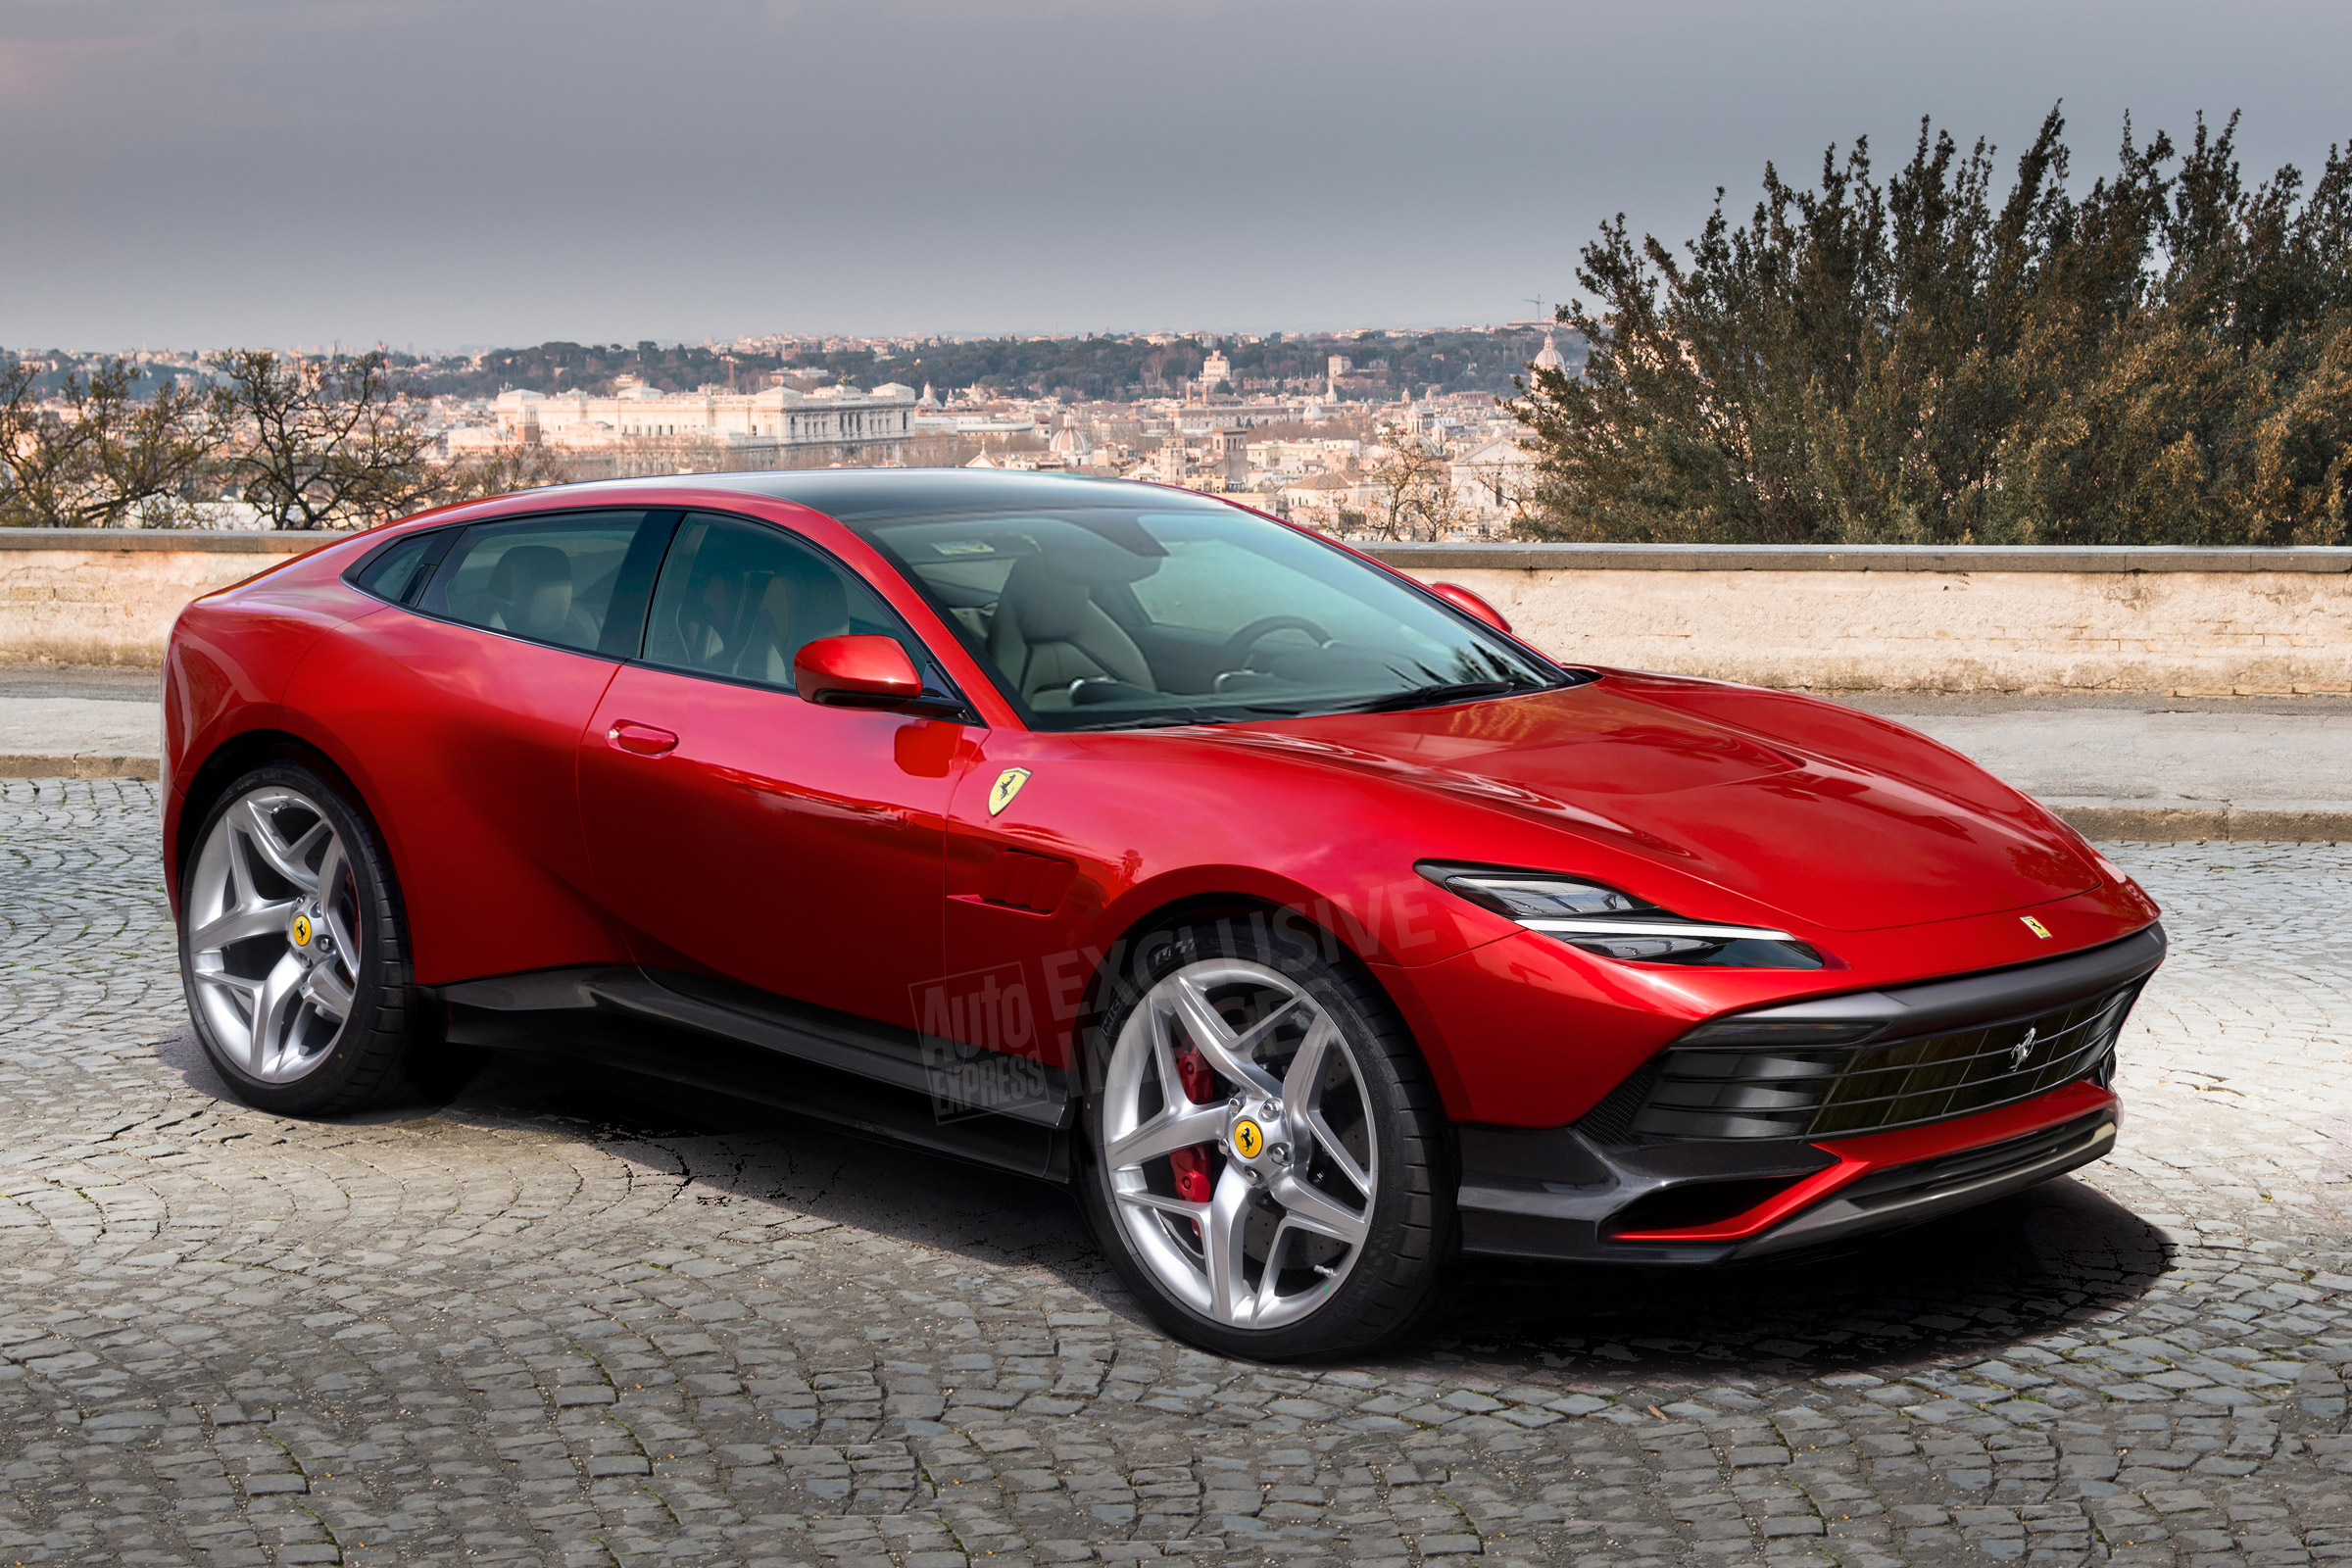 New 2021 Ferrari Purosangue SUV: design, specs and price ...